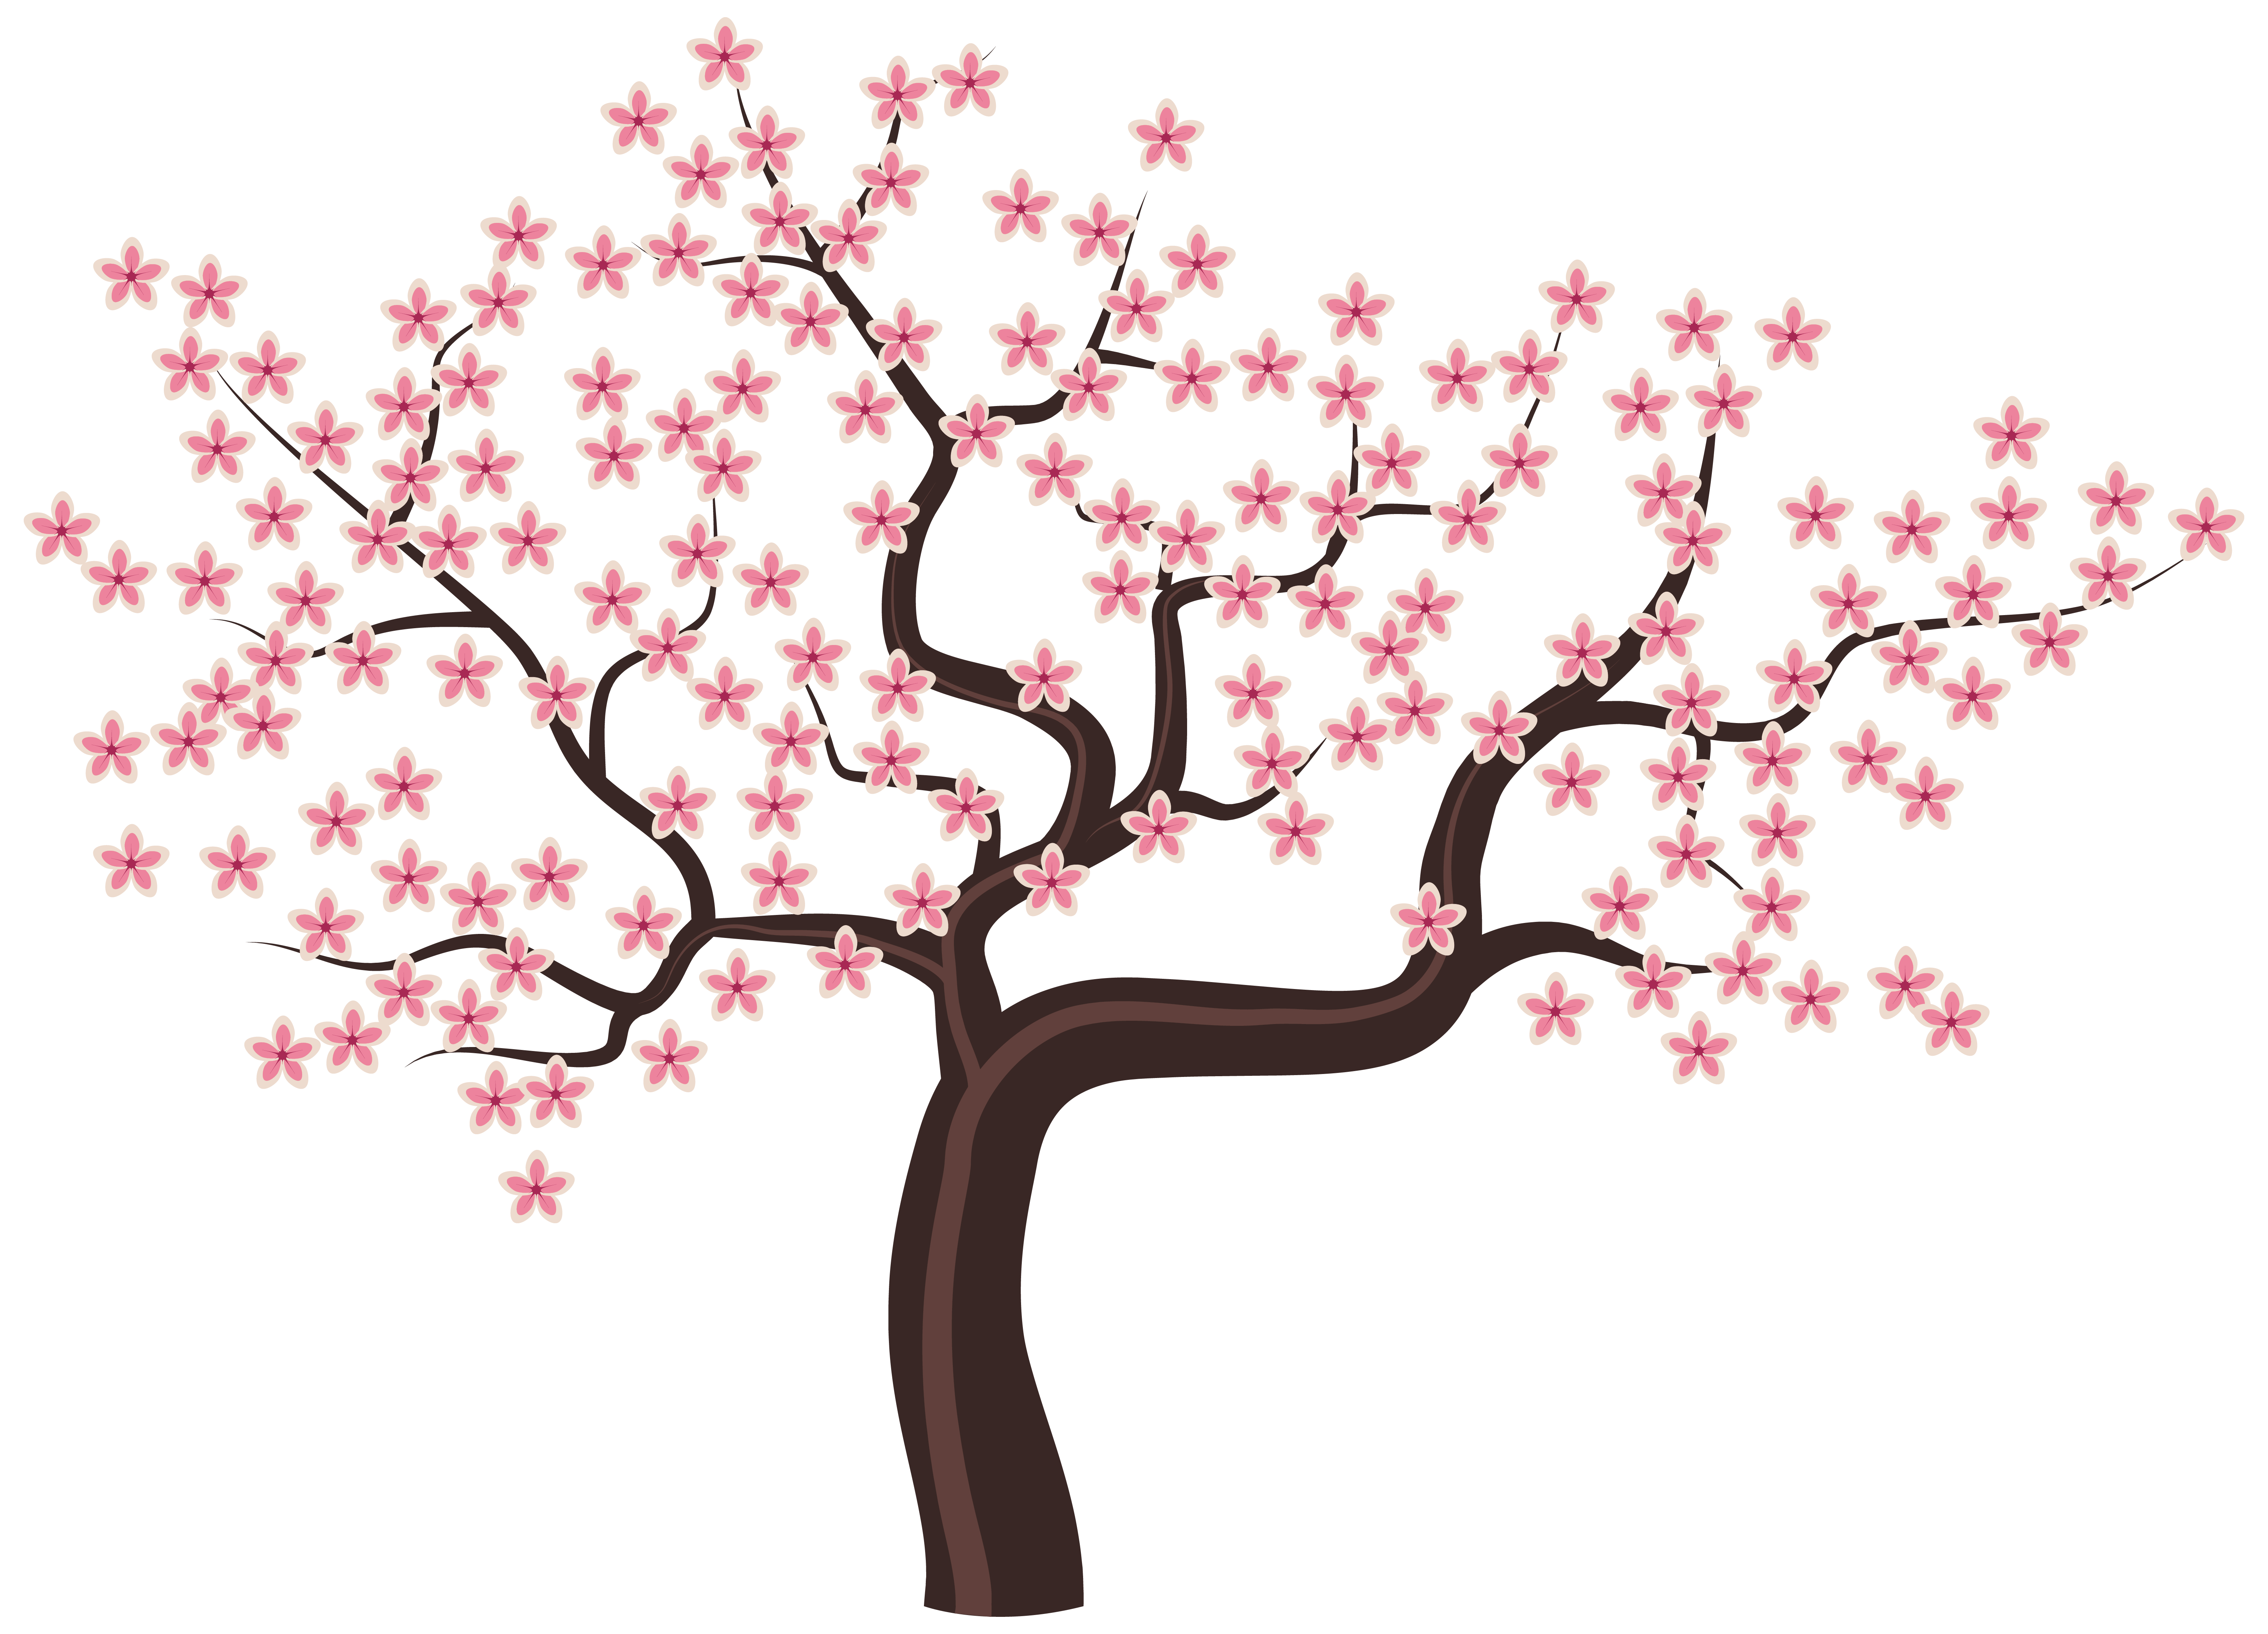 Blossom tree clipart banner transparent stock Tree with Flowers PNG Clipart Image banner transparent stock